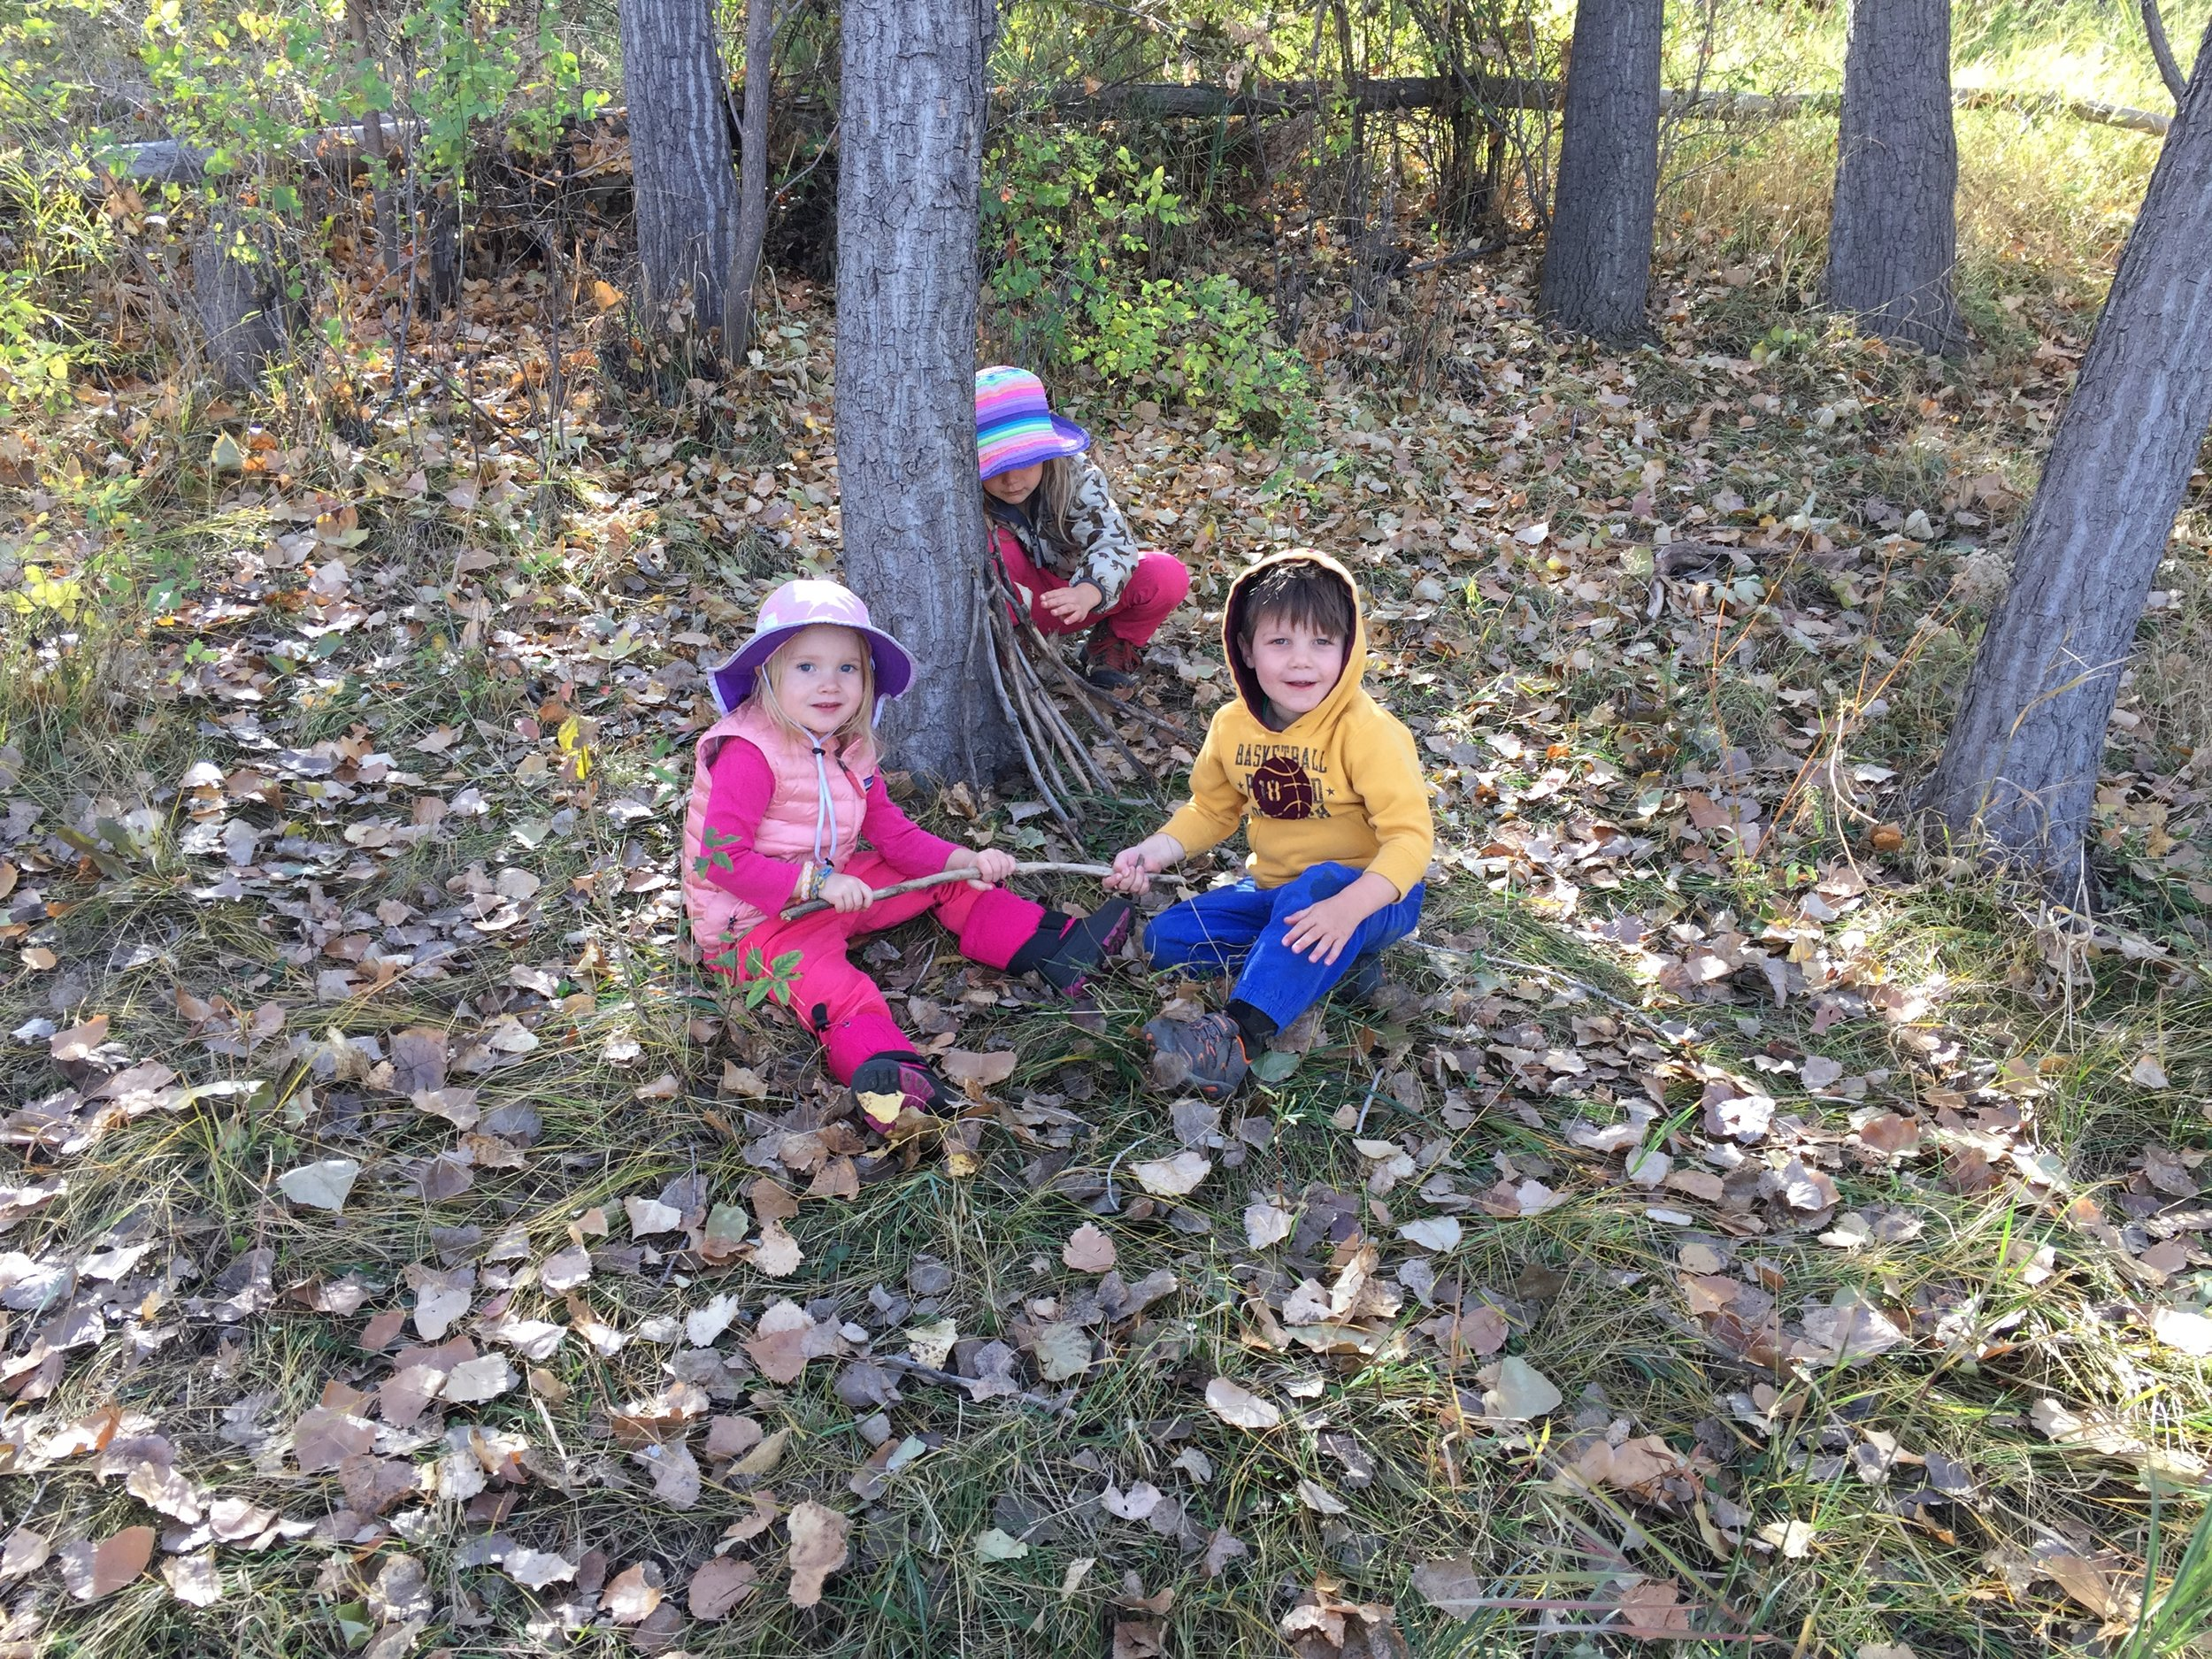 While some children were working on a fairy den, one child wanted to join in by taking the sticks apart, and luckily good-natured laughter ensued—what a funny trick! The children are learning all kinds of social communication, which will serve these little forest folk well throughout their lives.